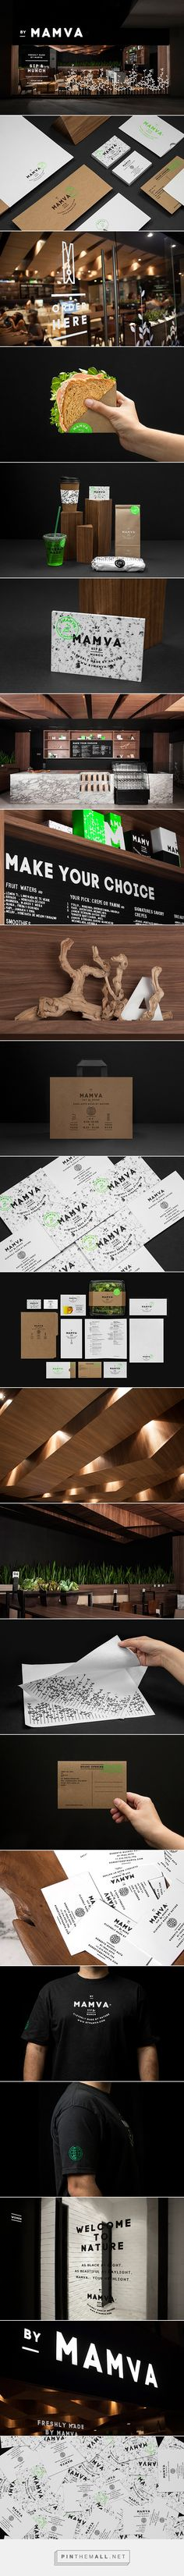 Mamva on Behance - created via http://pinthemall.net